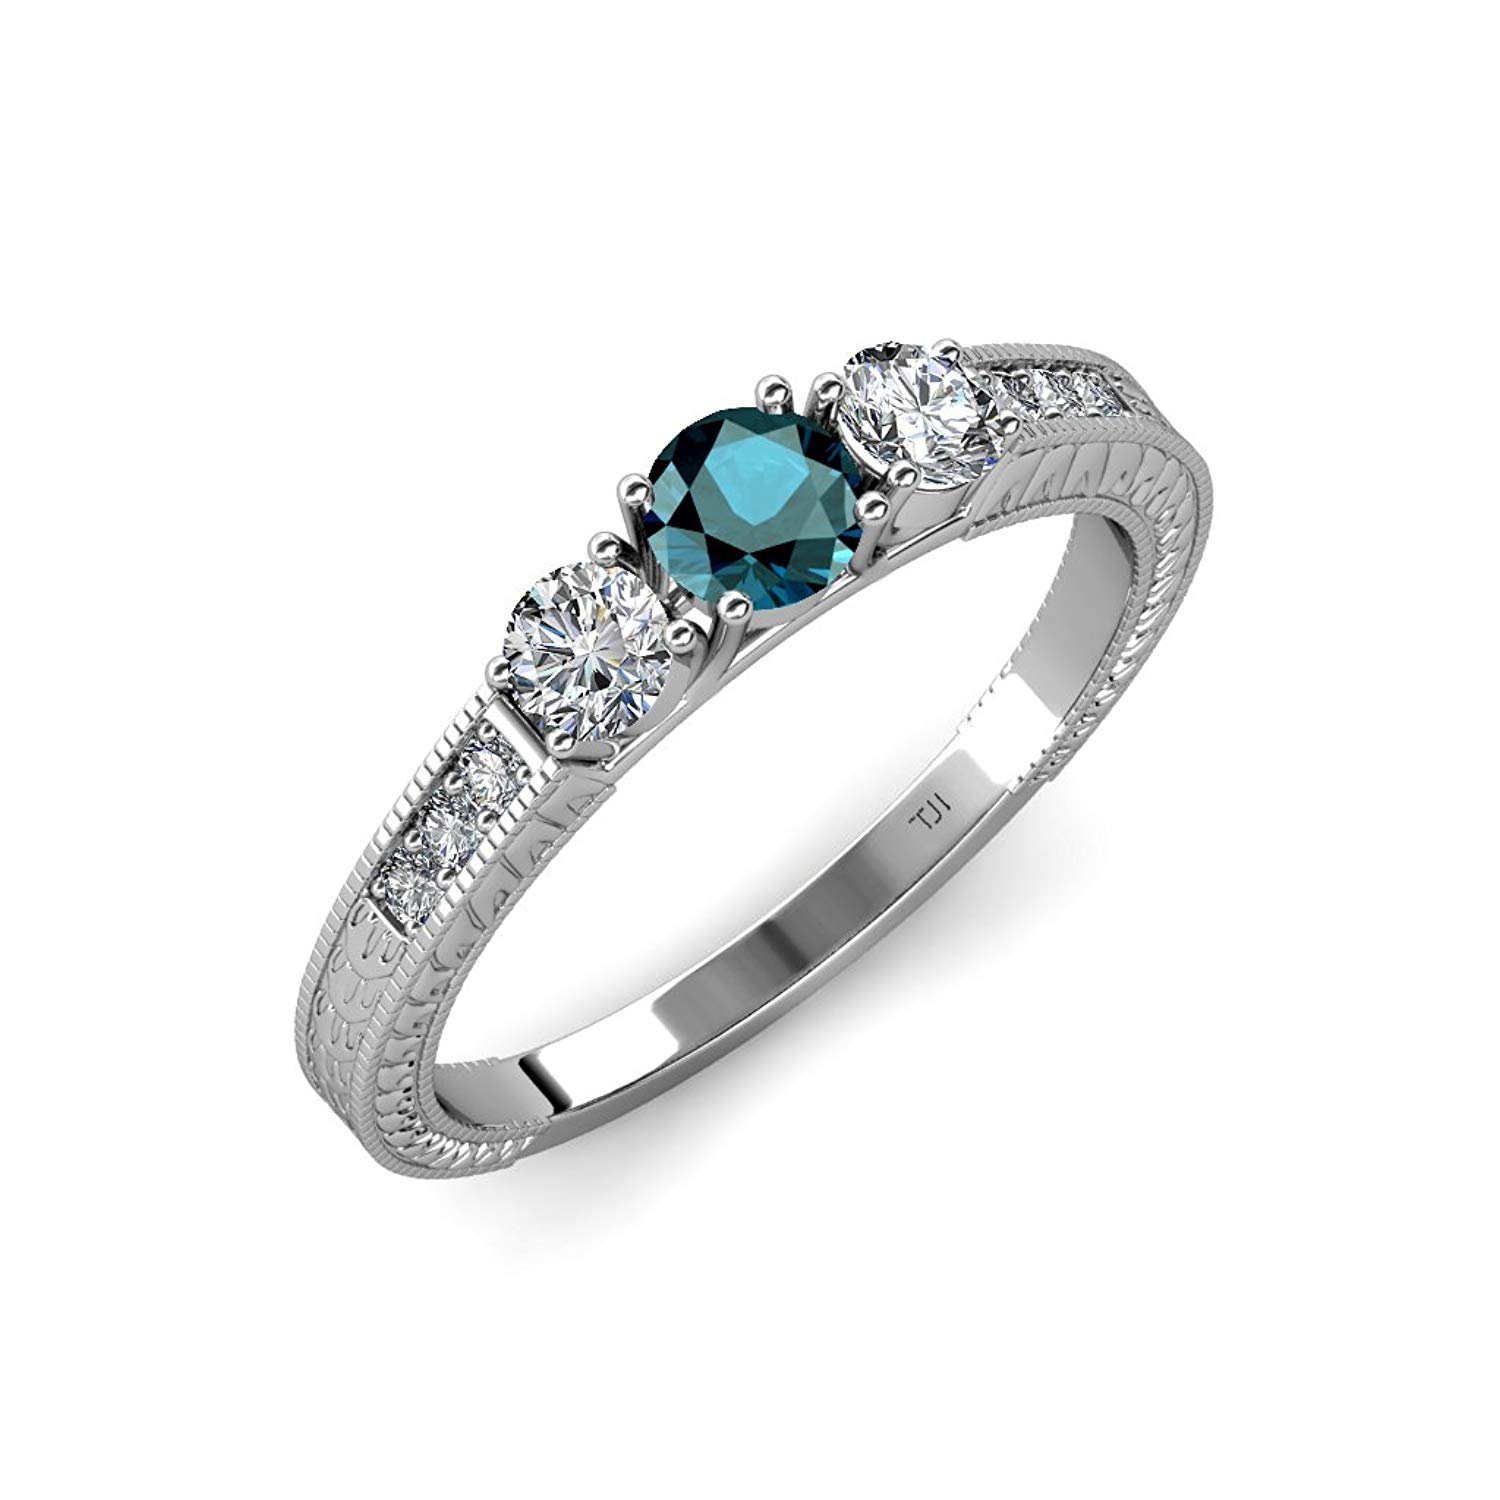 Blue & White Diamond Milgrain 3 Stone Ring with Side White Diamond 0.85 ct tw in 14K White Gold.size 8.5 by TriJewels